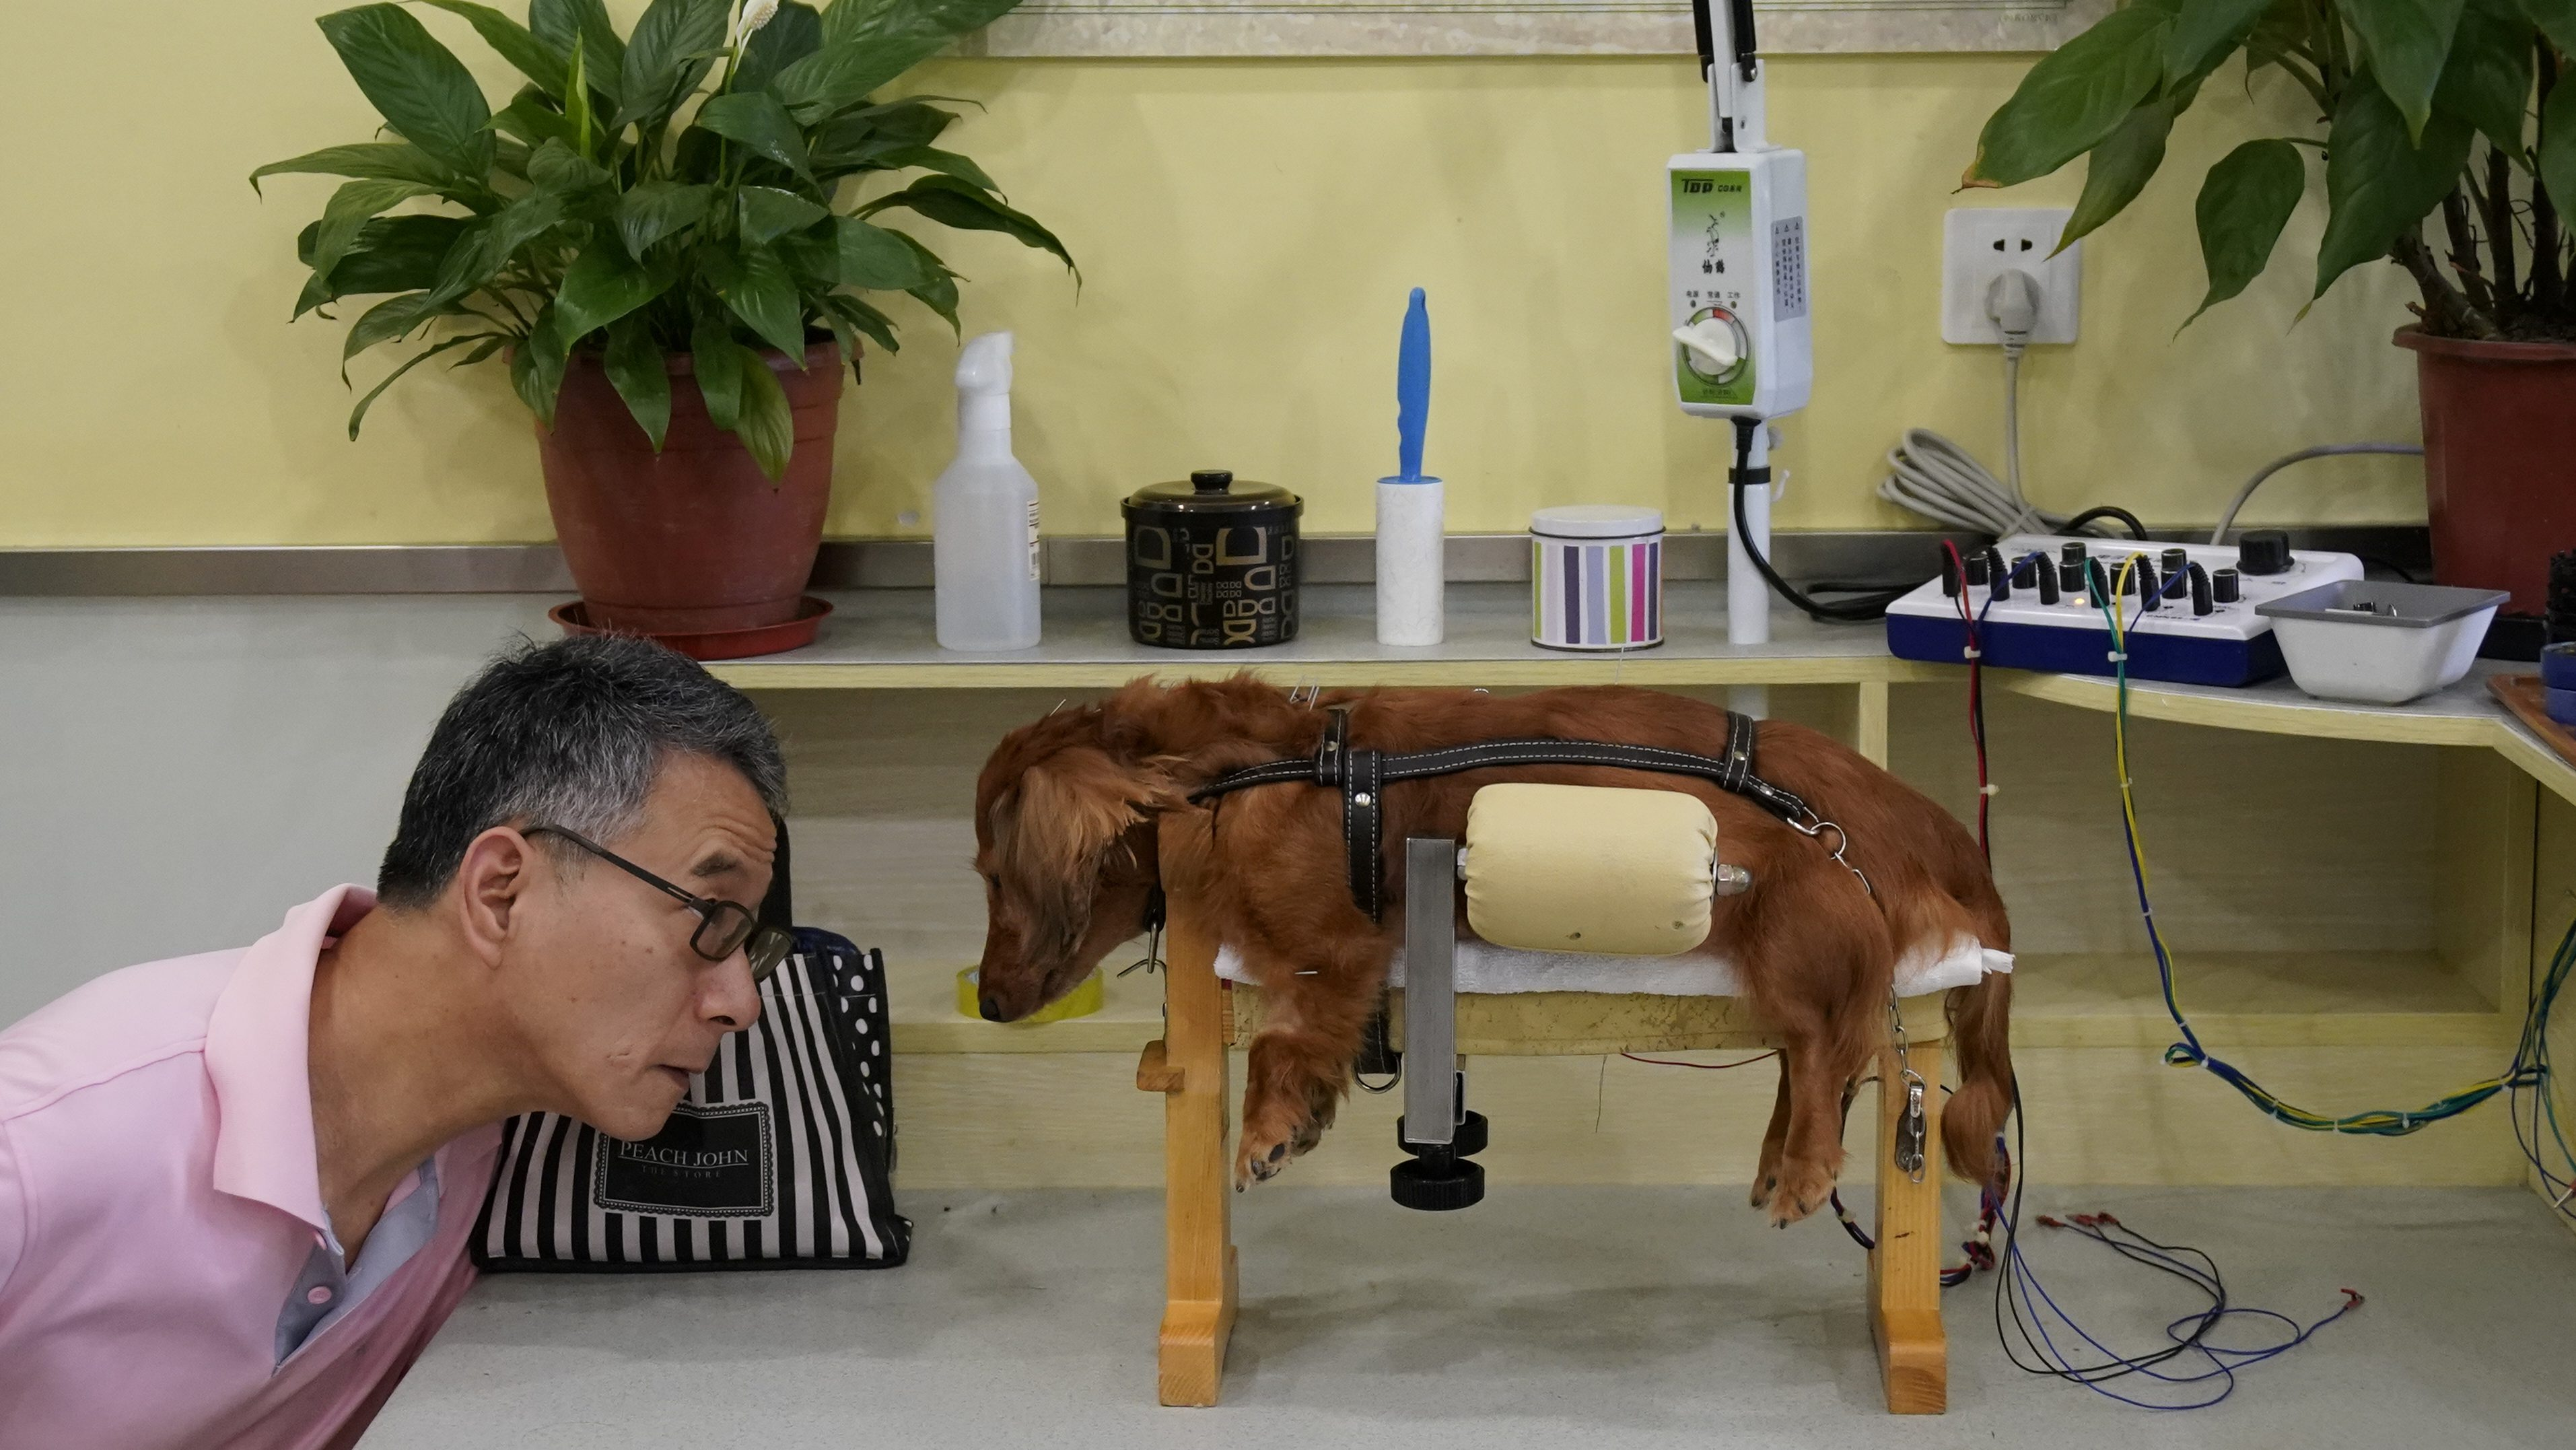 """A dog receives treatment at Shanghai TCM (Traditional Chinese Medicine) Neurology and Acupuncture Animal Health Center, which specialises in acupuncture and moxibustion treatment for animals, in Shanghai, China, August 16, 2017. REUTERS/Aly Song       SEARCH """"ACUPUNCTURE"""" FOR THIS STORY. SEARCH """"WIDER IMAGE"""" FOR ALL STORIES. - RTS1COM3"""